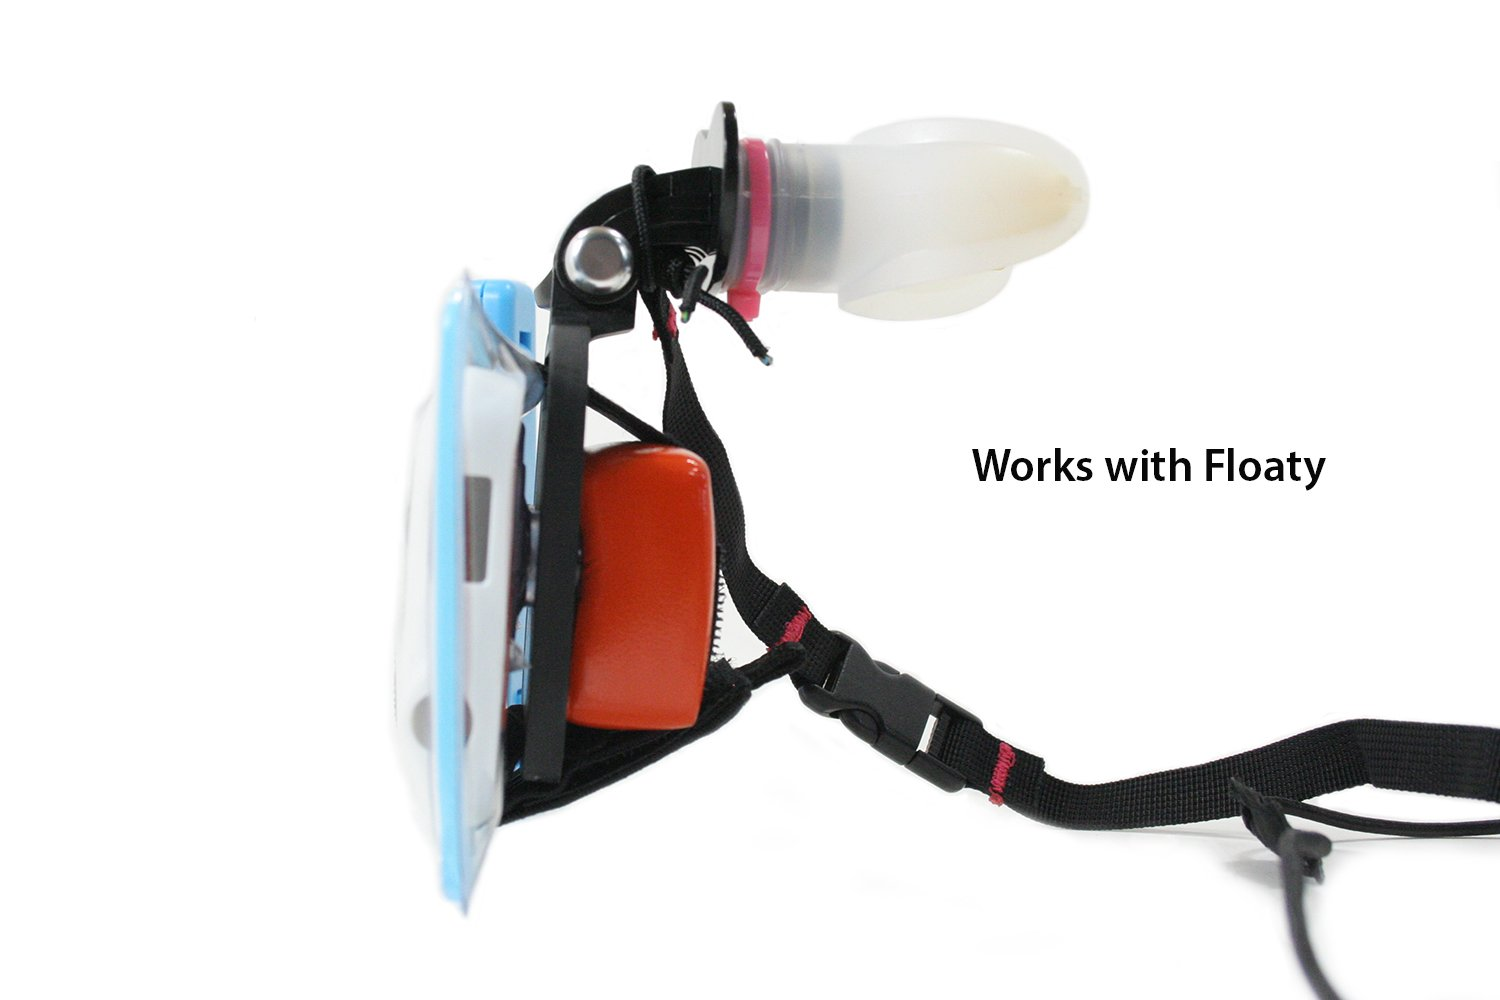 Action Mount - GoPro Style Mouth Mount for use with GoPro Cameras. Capture Footage While Kayaking, SUP, Wakeboarding and Surfing (with Floaty, Neck Lanyard).